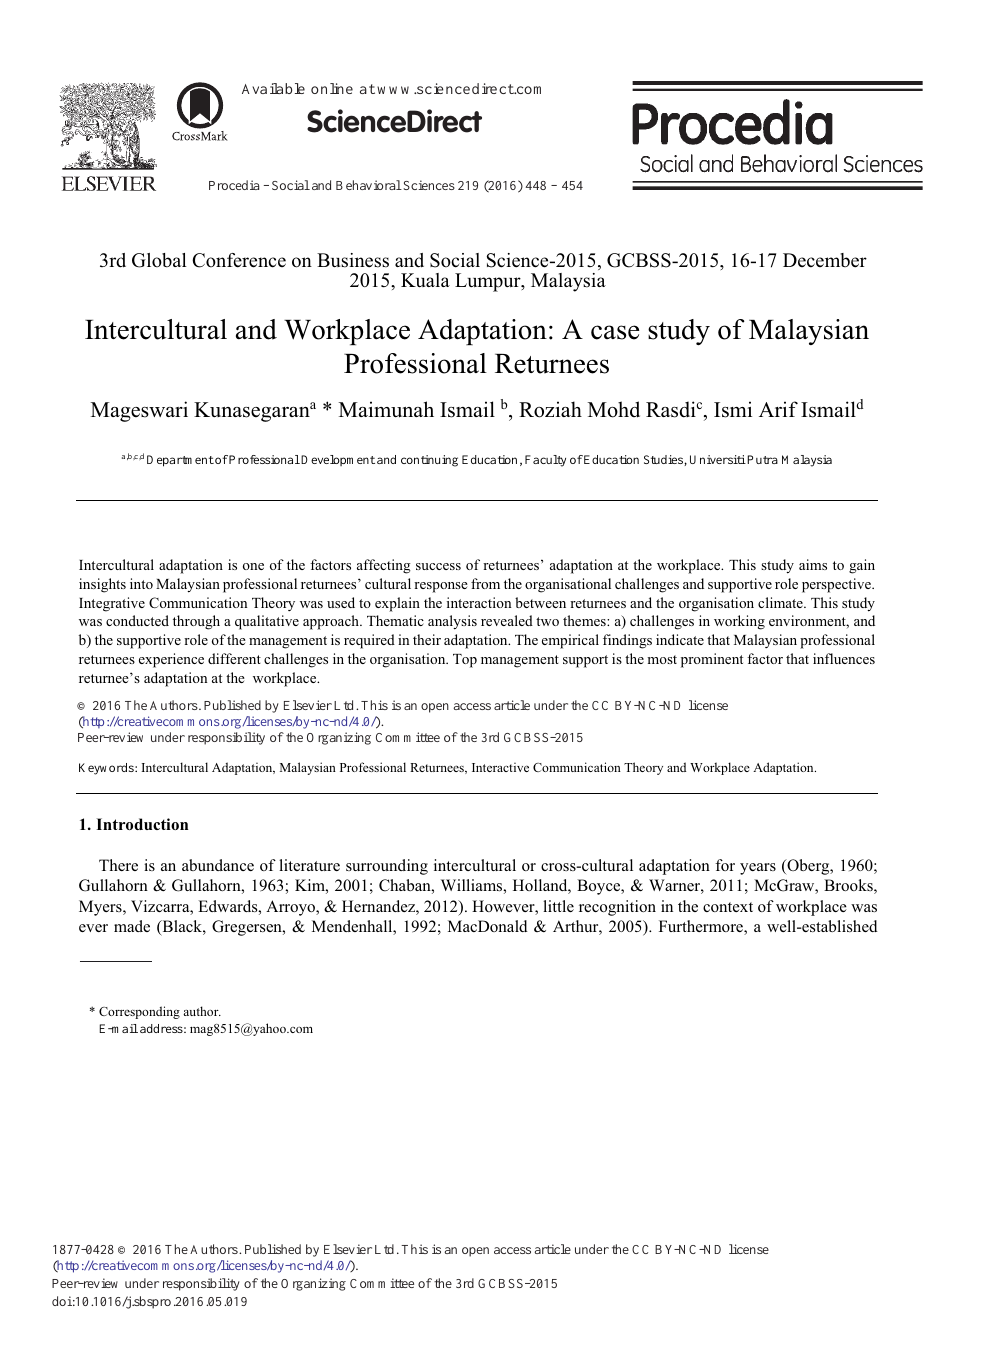 Intercultural and Workplace Adaptation: A Case Study of